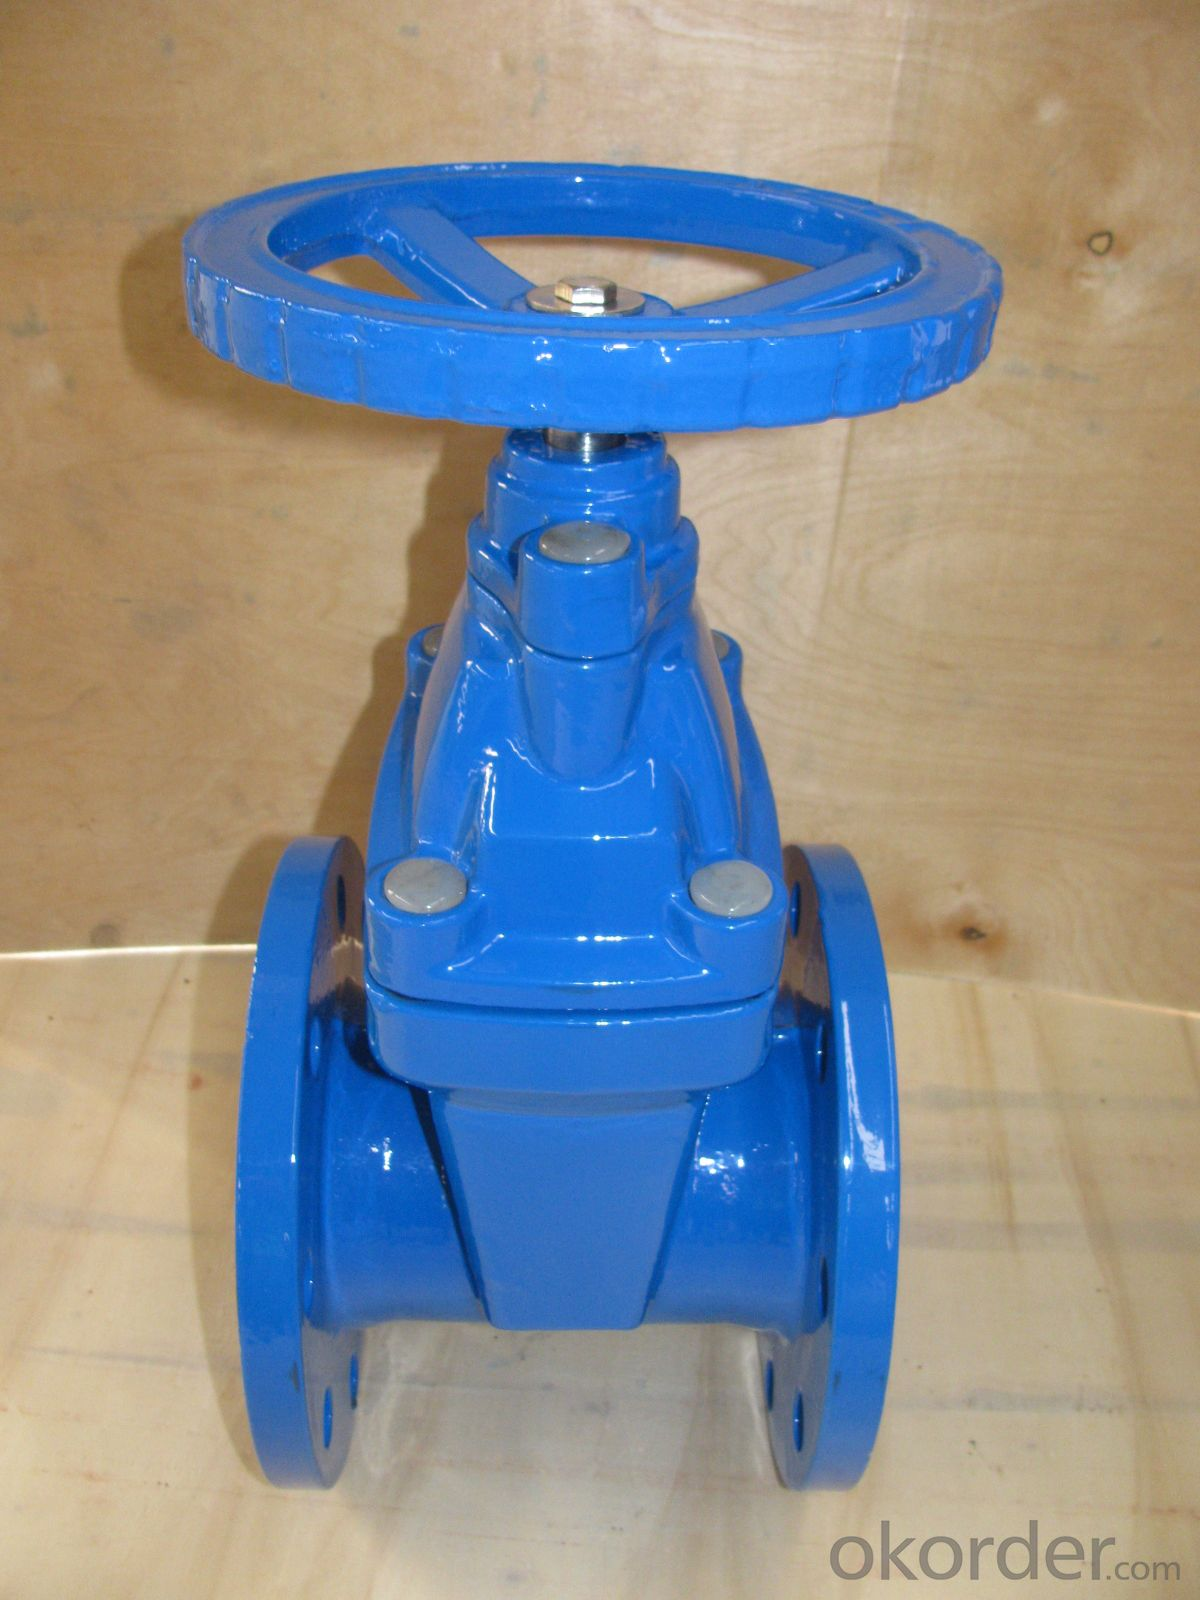 Ductile iron valve with best price and quality